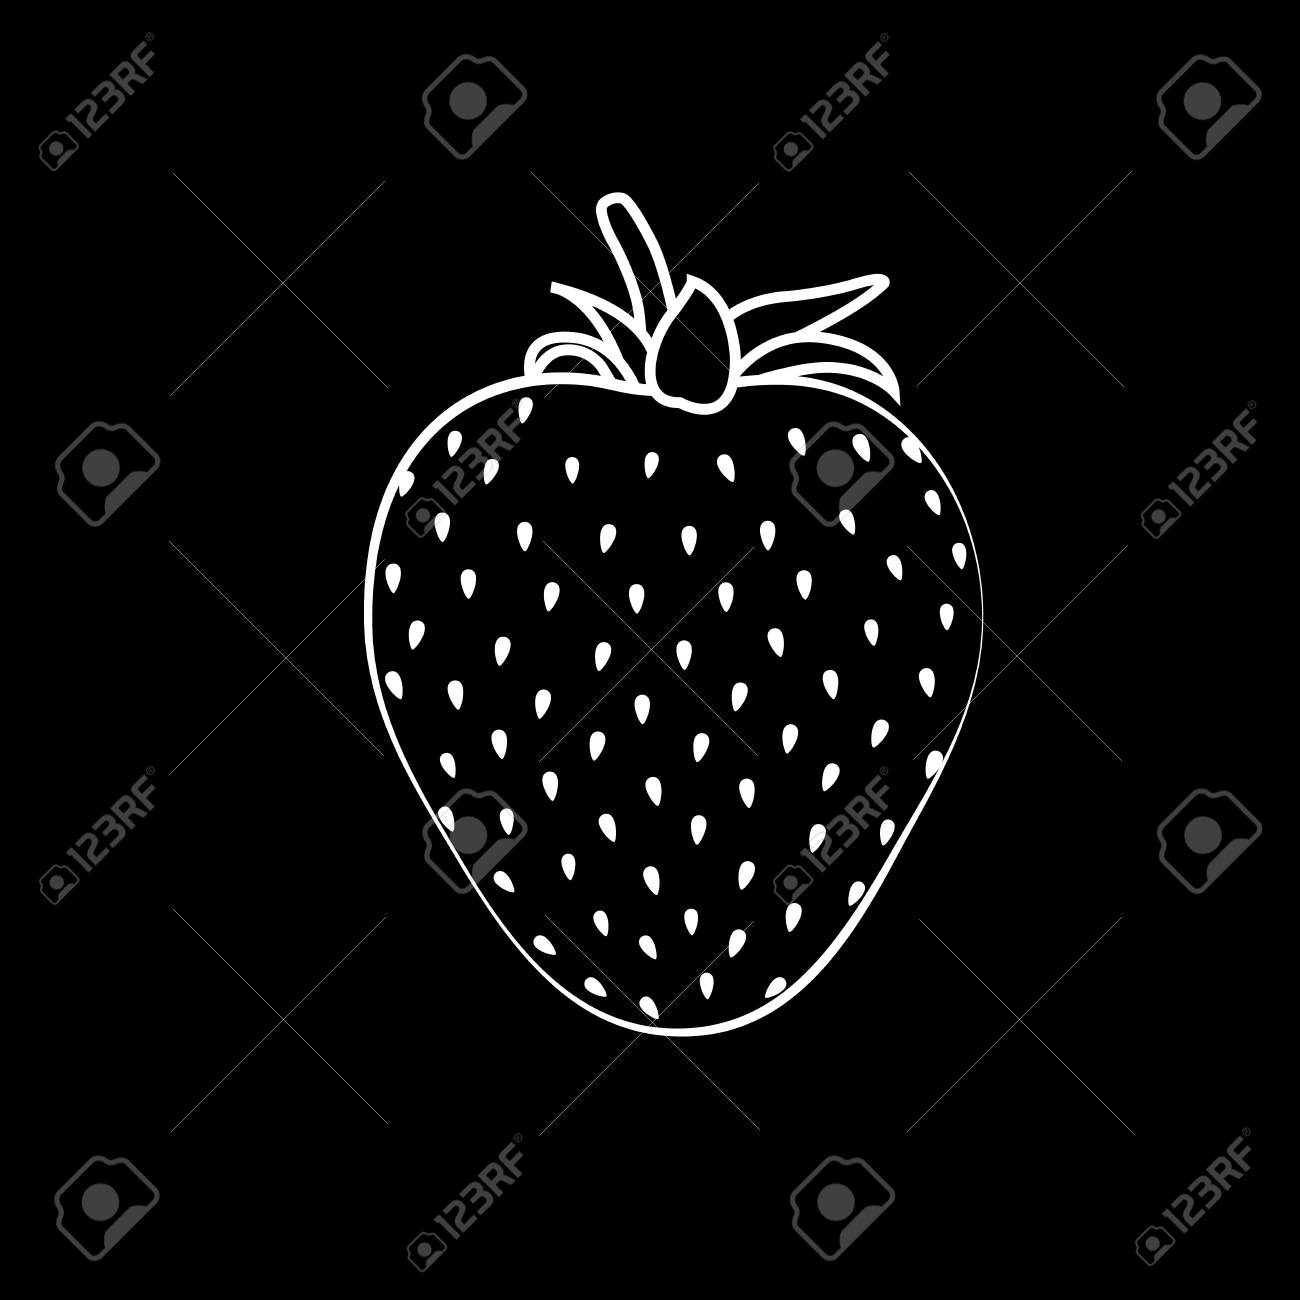 Beautiful black strawberry silhouette with white stroke vector illustration black background stock vector